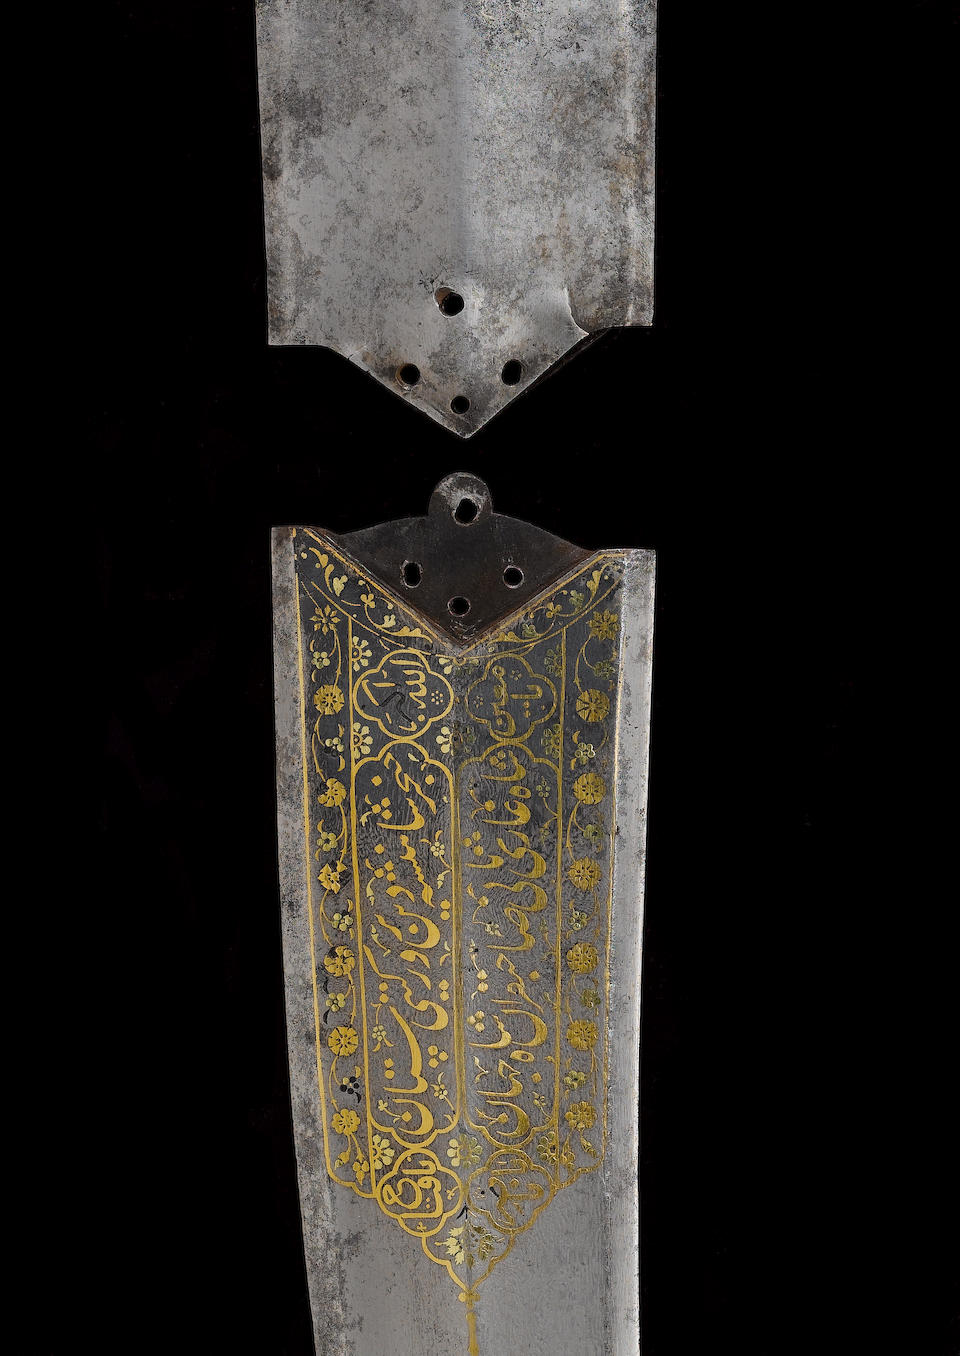 An important Dagger (Khanjar) with the blade inscribed to the Mughal Emperor Shah Jahan (reg. 1628-1657) Akbarabad (Agra), dated AH 1039/ AD 1629-30(2)